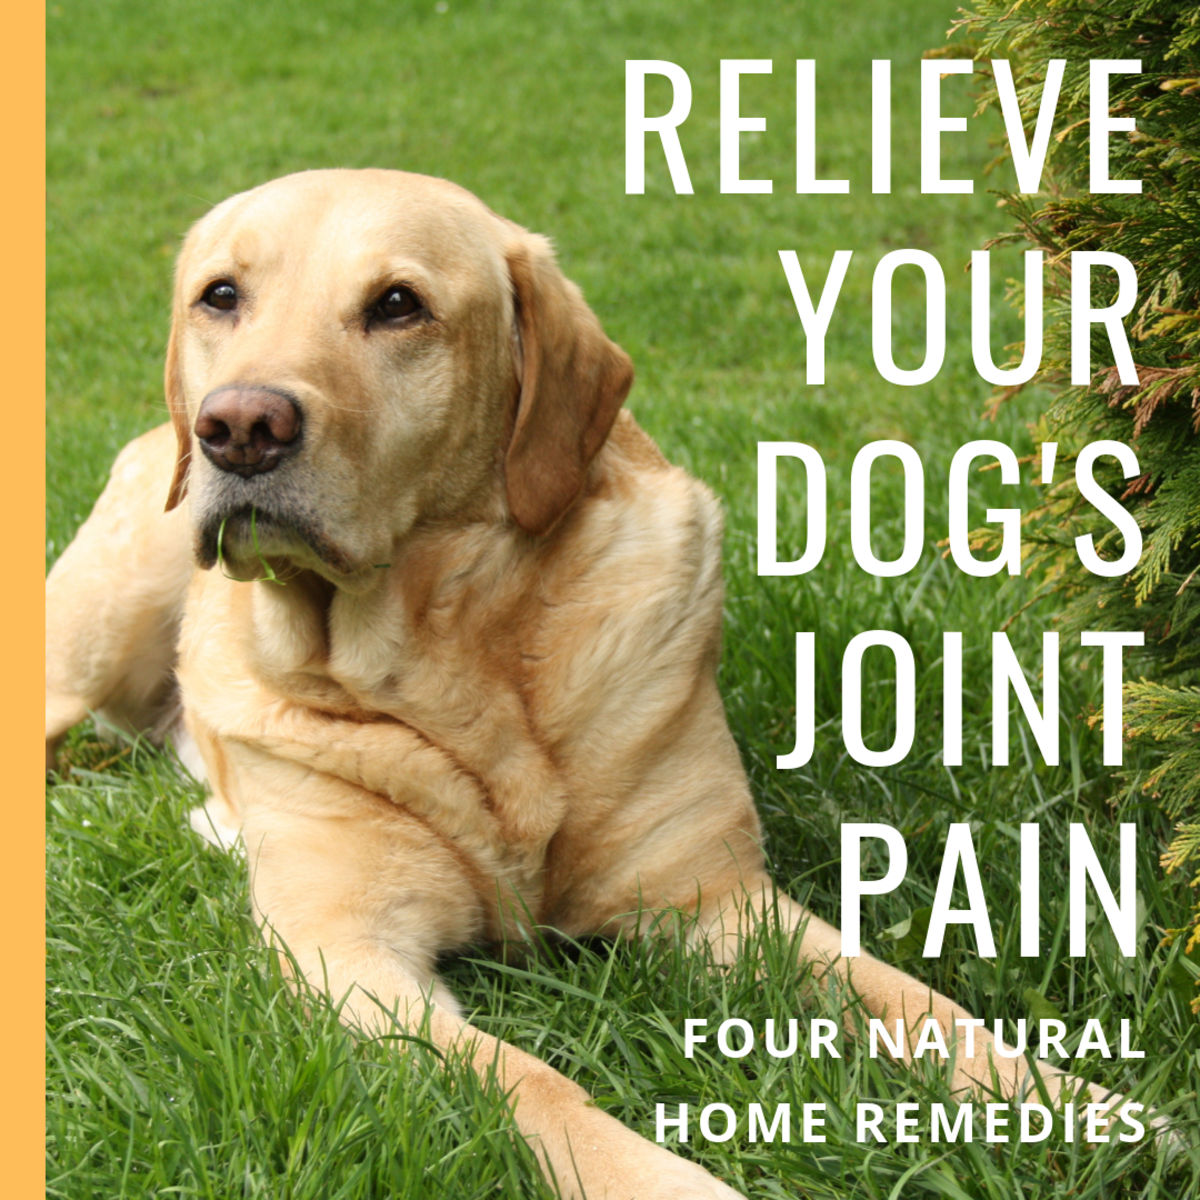 Natural Remedies and Relief for Dogs With Arthritis, Joint Pain, Hip Dysplasia, and Shoulder OCD